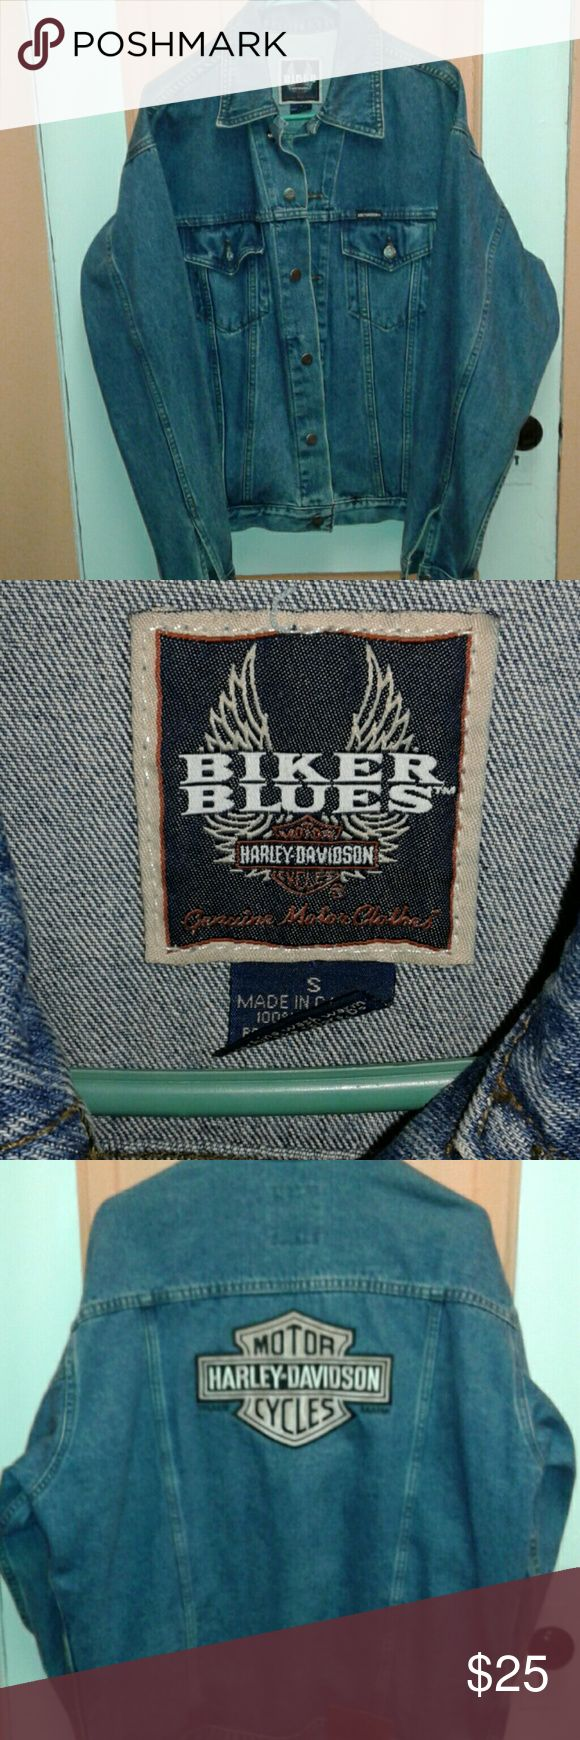 WOMANS/ MENS JEAN JACKET AUTHENTIC HARLEY DAVIDSON JEAN JACKET BIKER BLUES HARLEY DAVIDSON Jackets & Coats